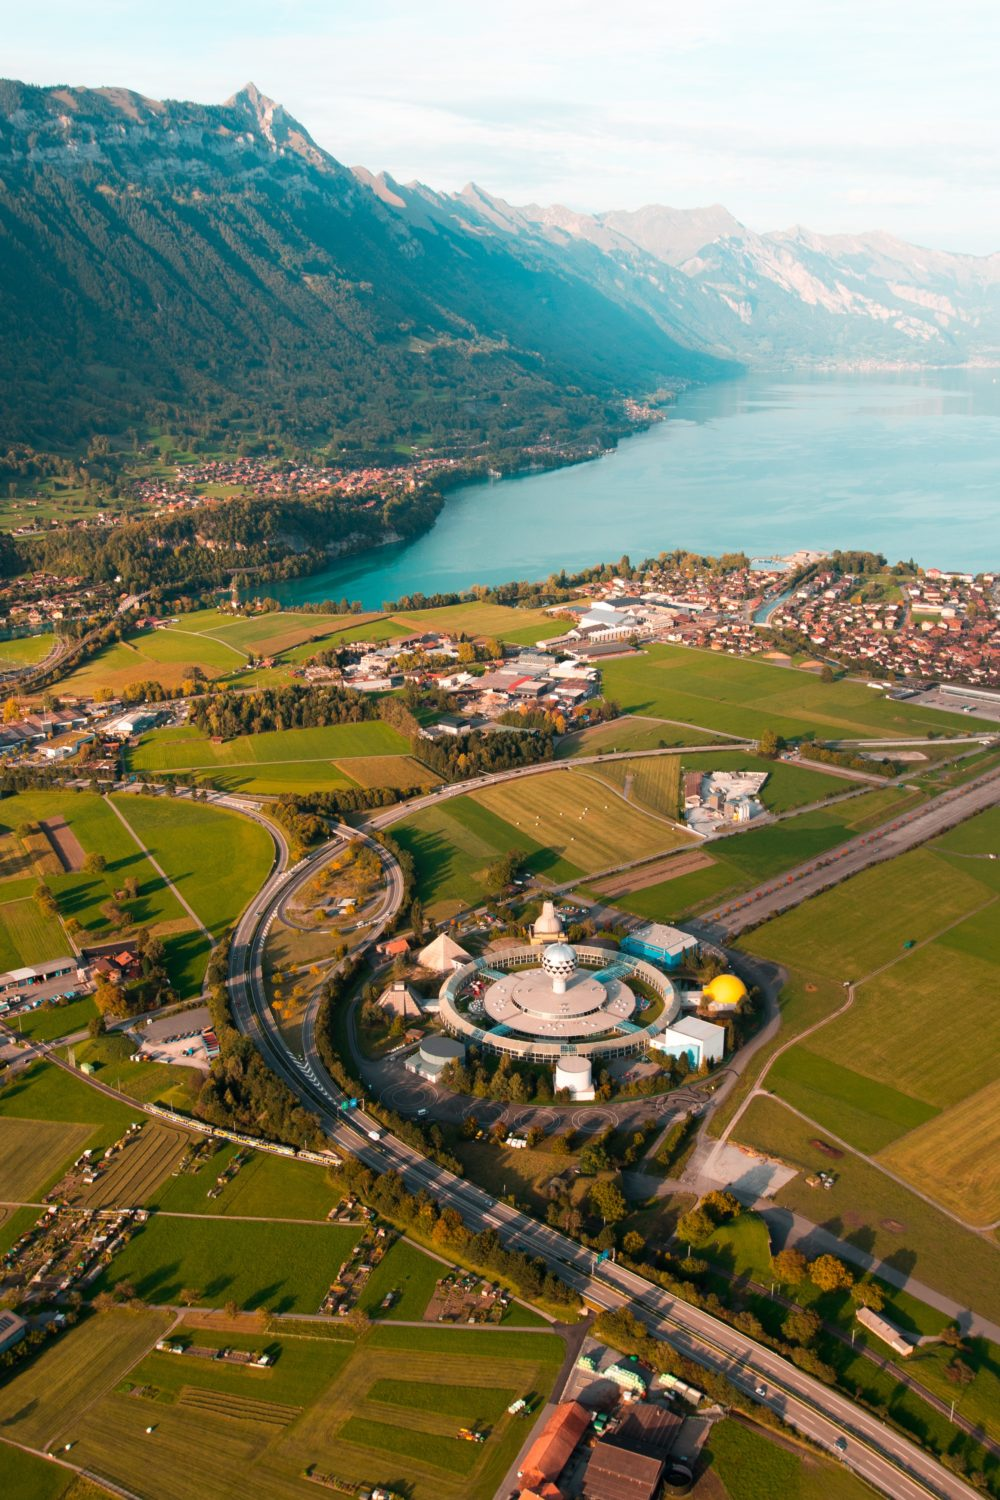 Interlaken - 10 of the Best things to do in Switzerland in the summer